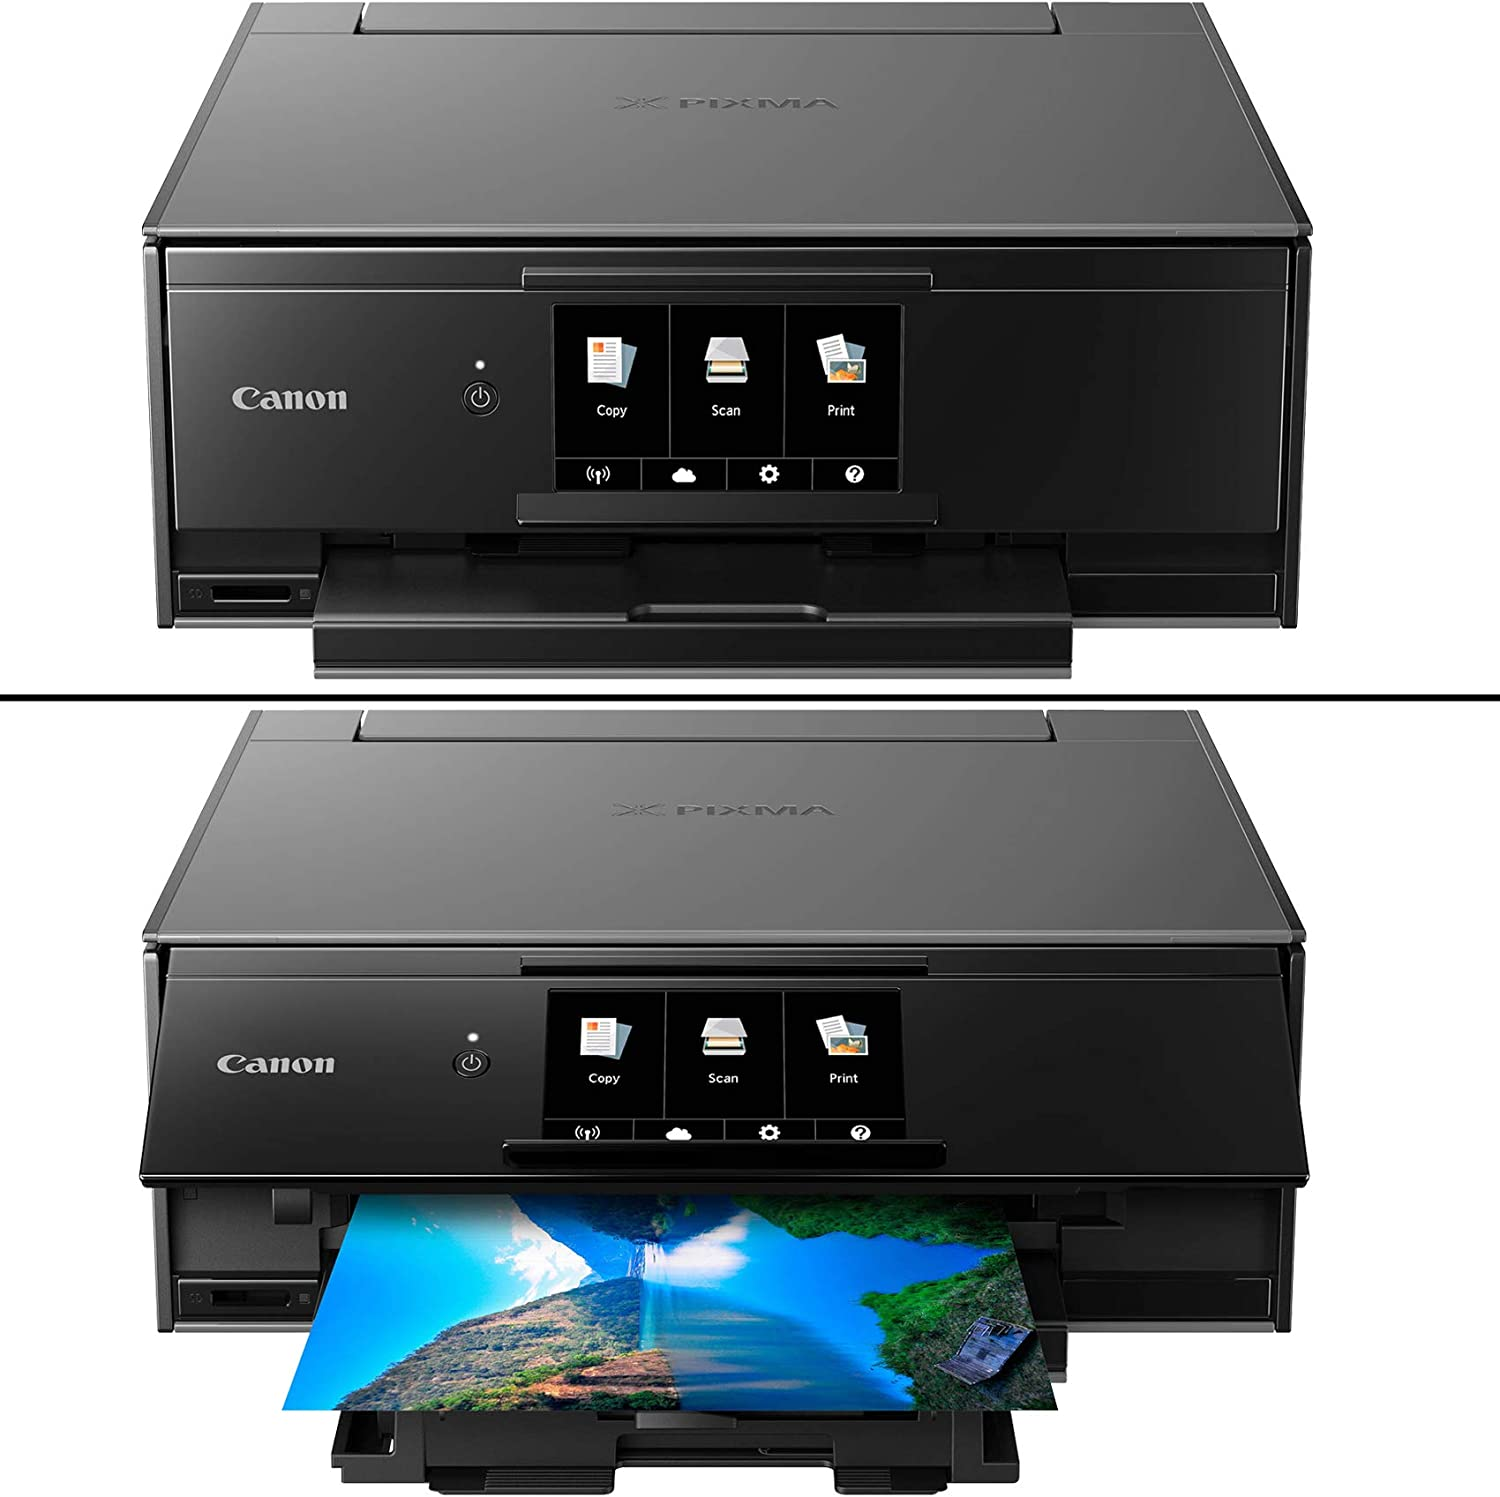 Canon Pixma TS9120 Wireless Inkjet All-in one Printer (Gray) with Scan, Copy, Mobile Printing, Airprint & Google Cloud + Set of Ink Tanks + Photo ...